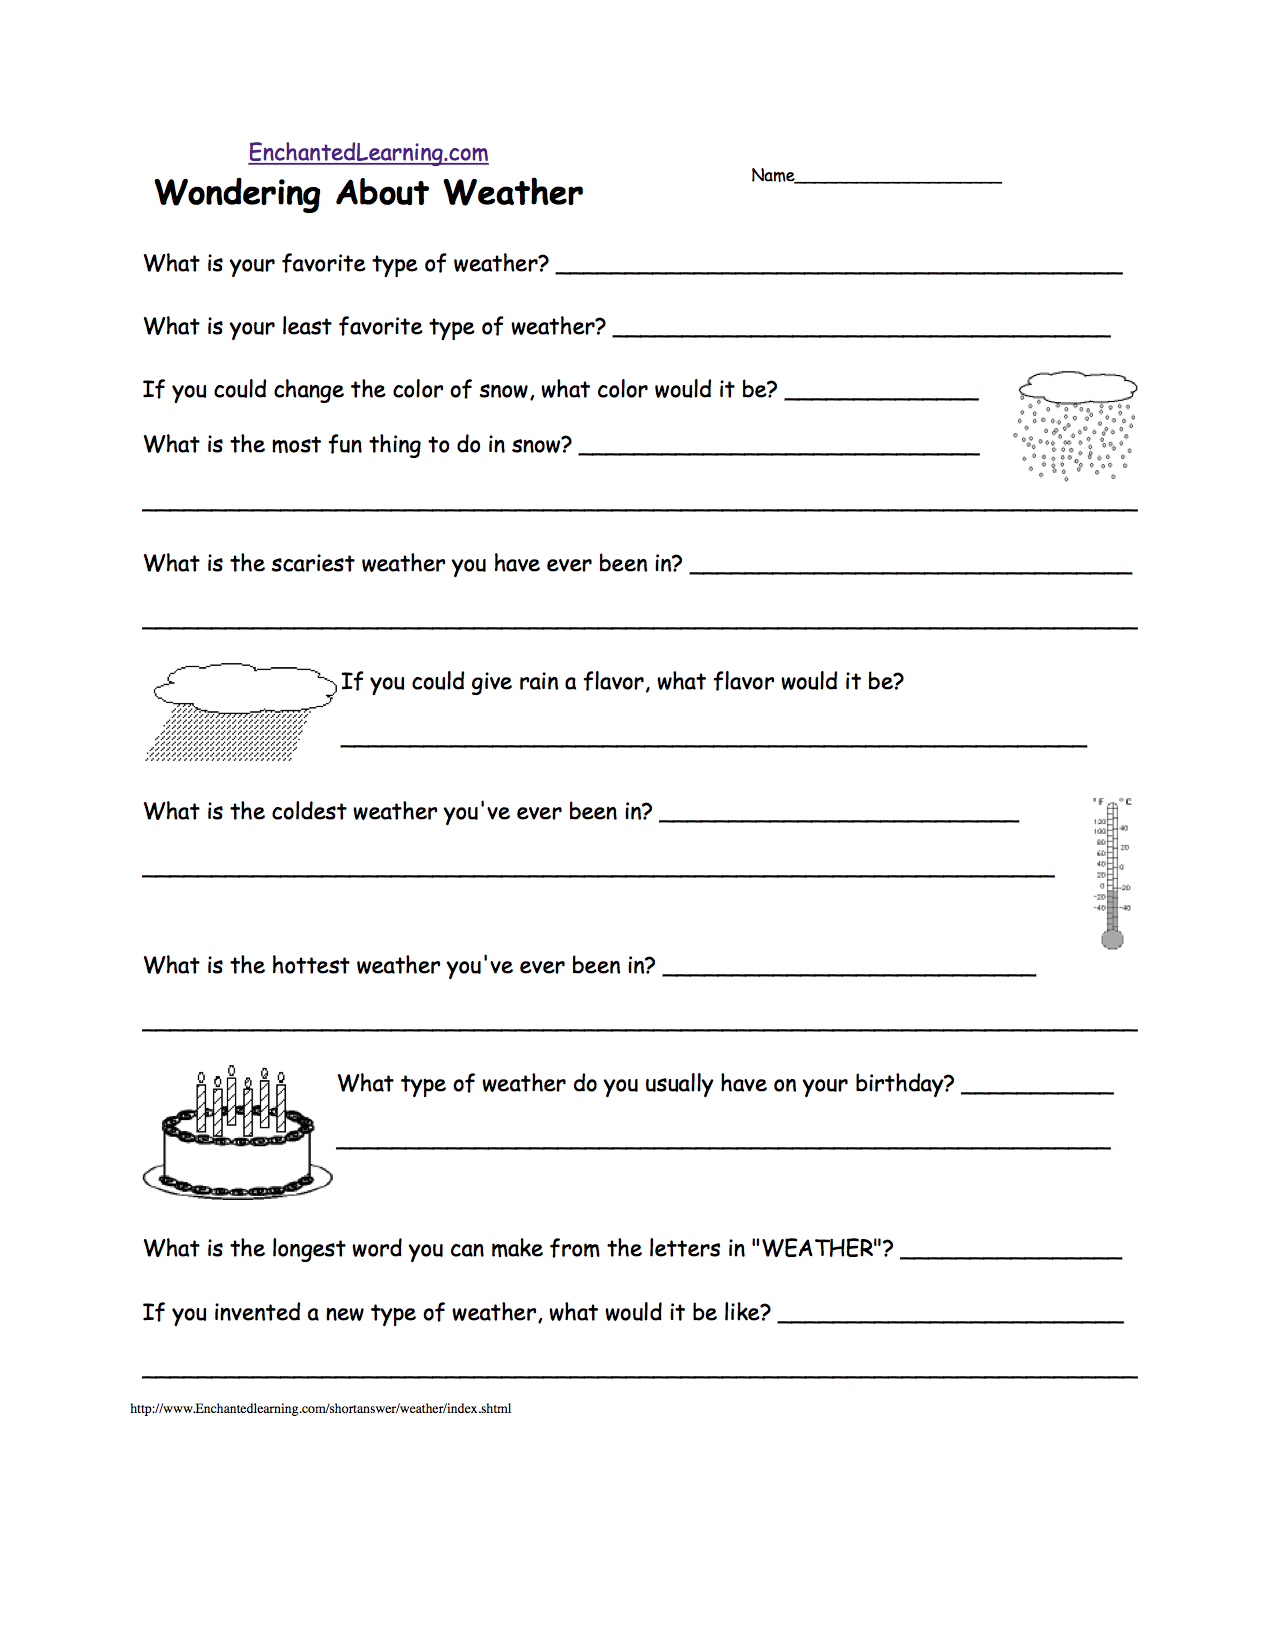 Printables Science Weather Worksheets weather related writing activities at enchantedlearning com weather